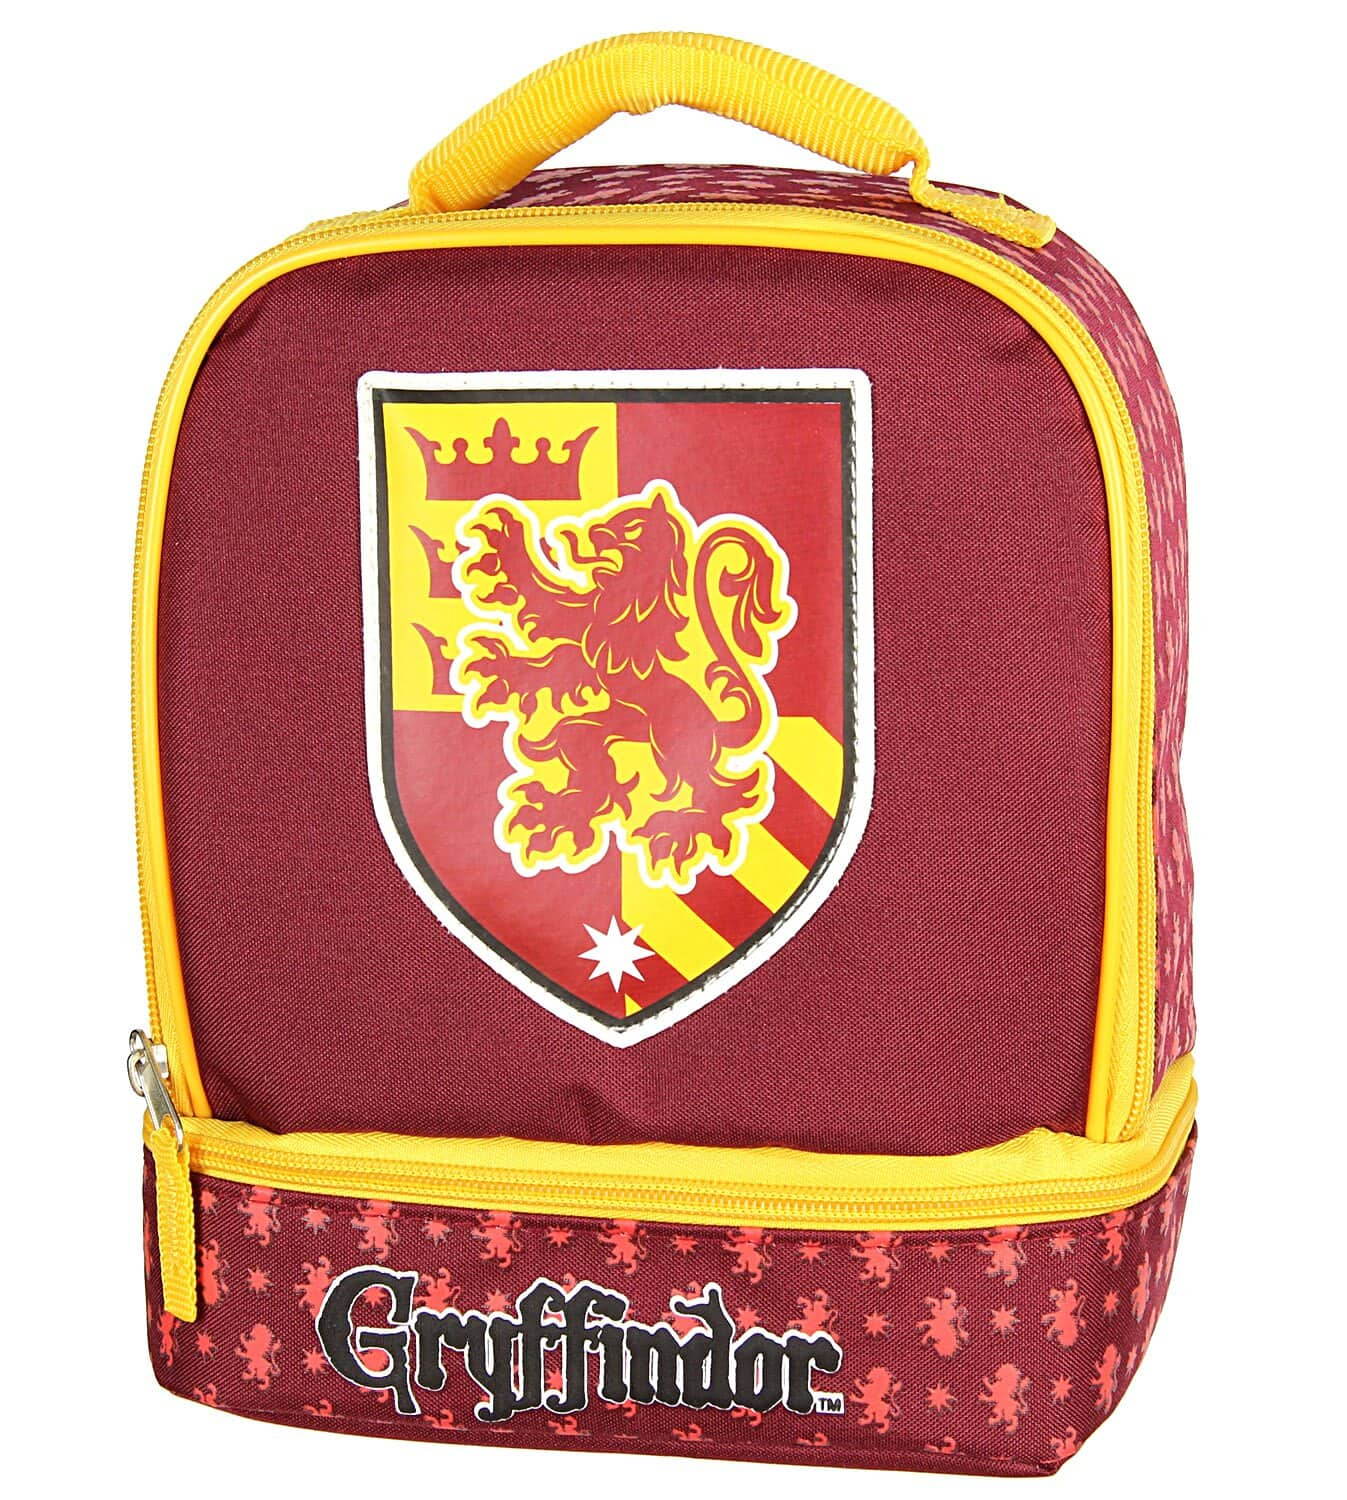 Harry Potter Insulated Dual Compartment Lunch Box (all houses) : $13.56 AC + FS